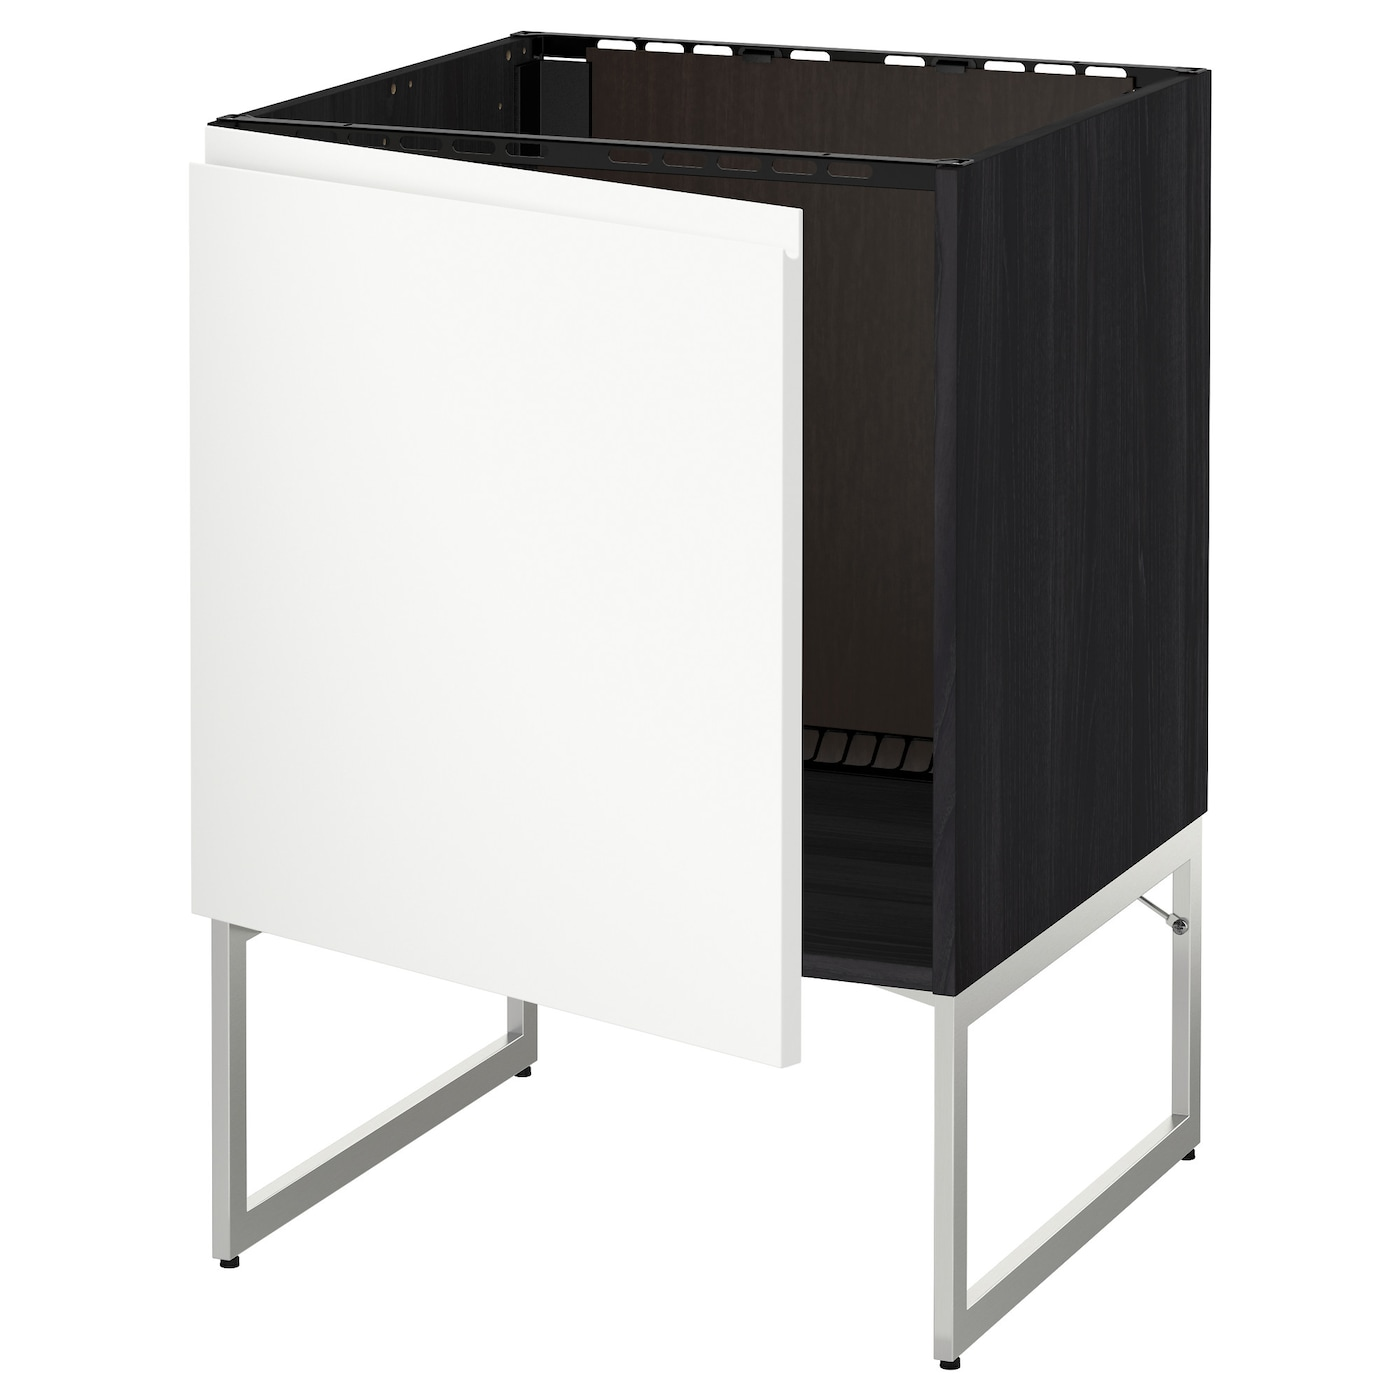 Metod Base Cabinet For Sink Black Voxtorp White 60x60x60 Cm Ikea